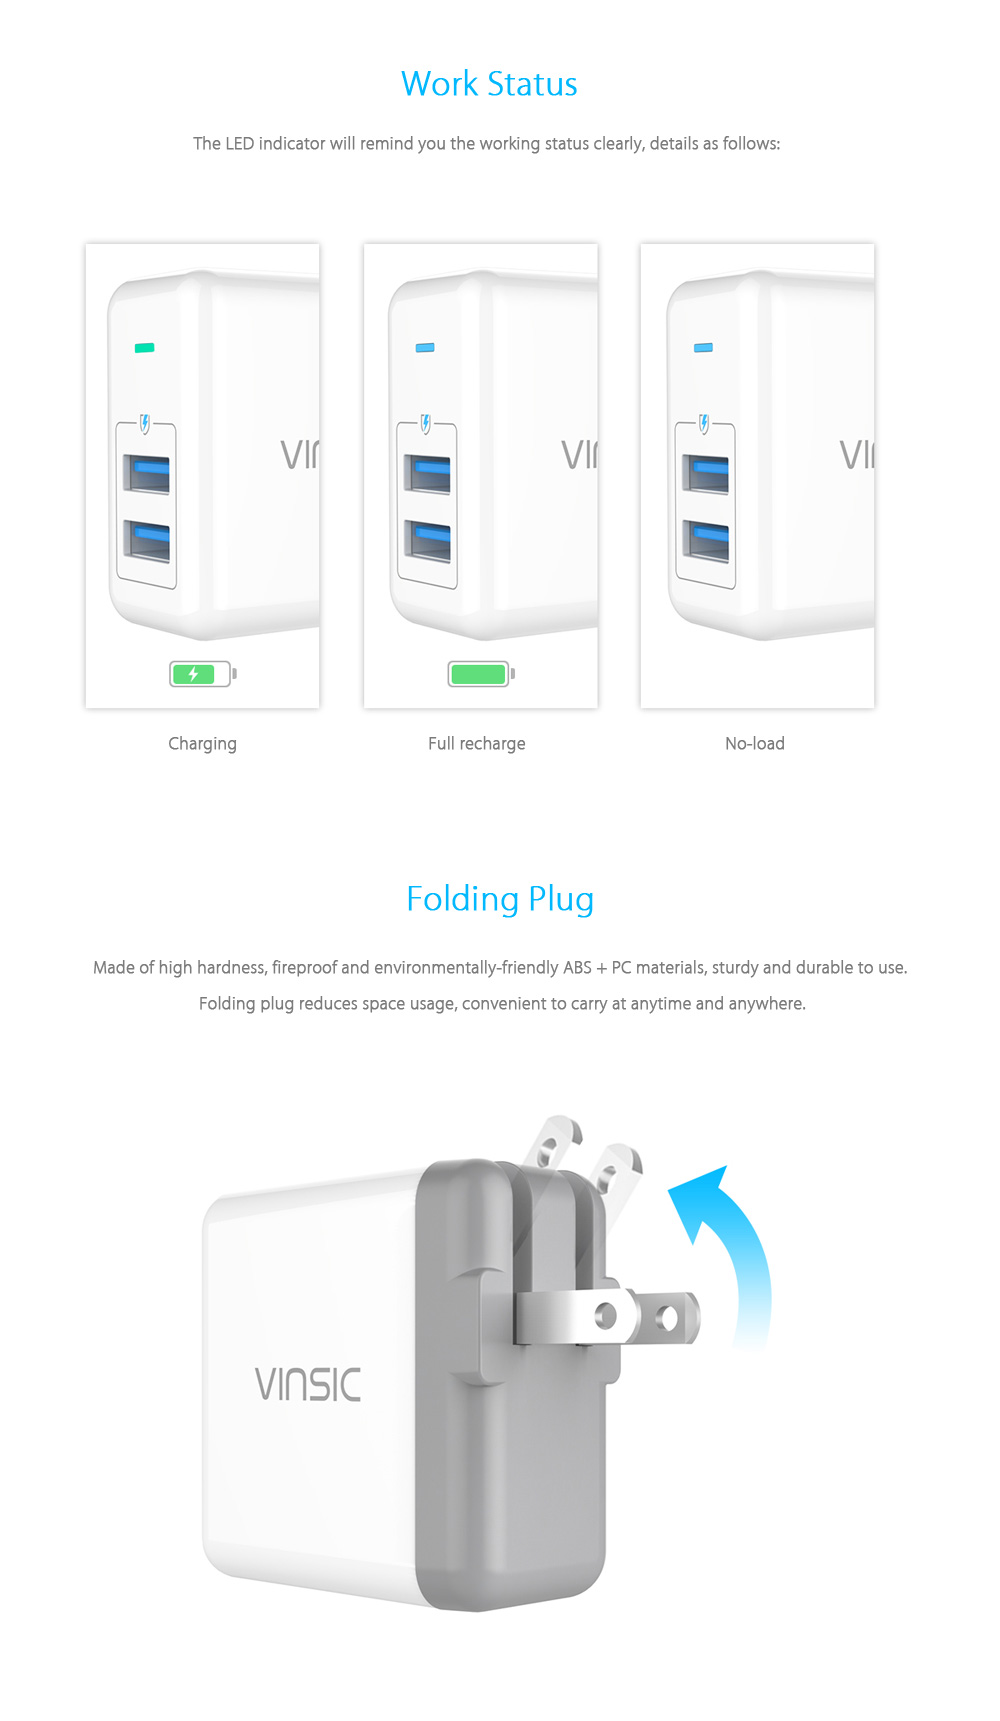 VINSIC VSCW208 5V 4.8A 24W Wall Charger Dual USB Output